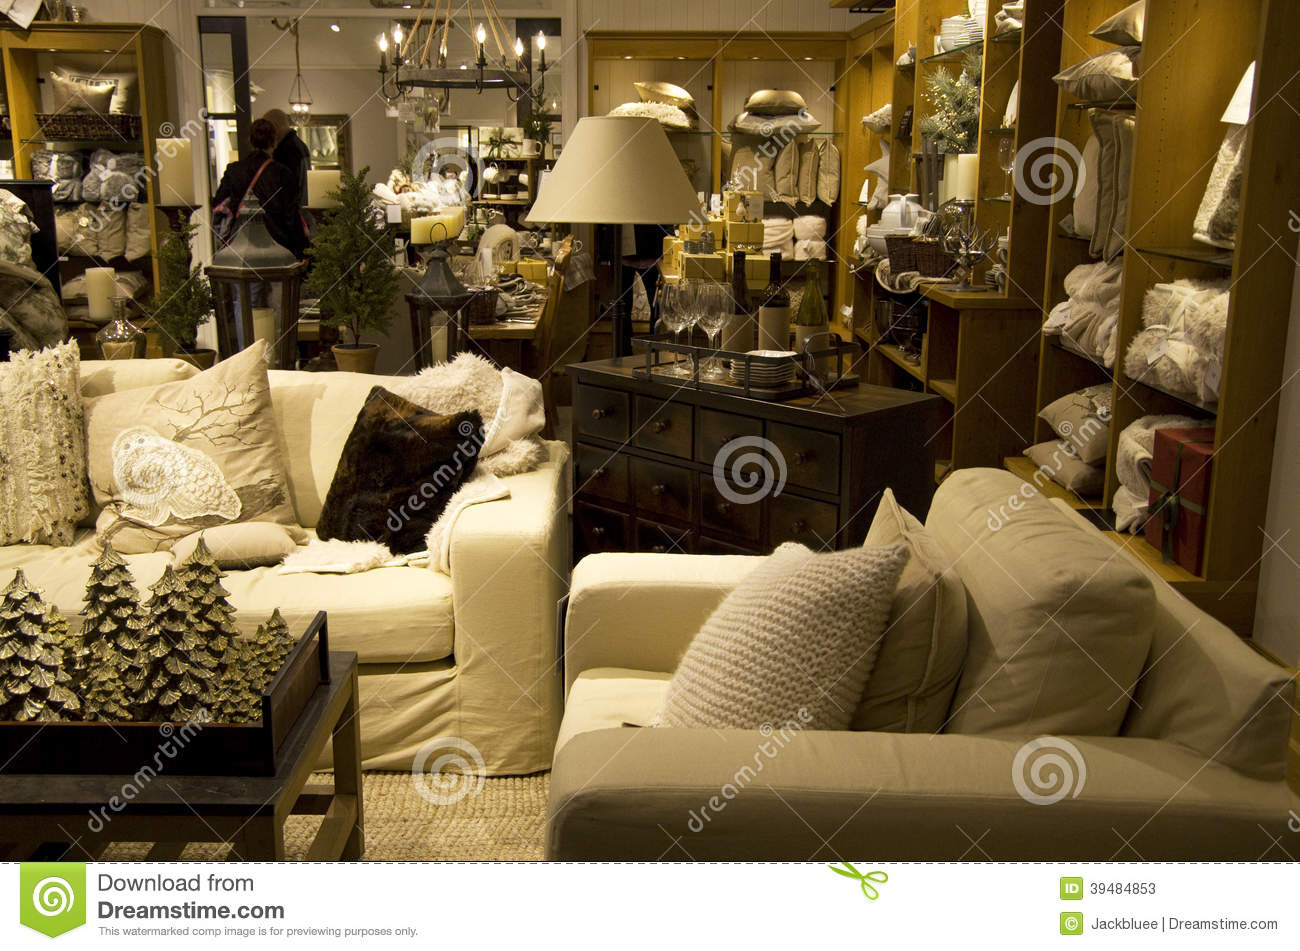 Home Goods Furniture Store Stock Image Image Of Furniture 39484853